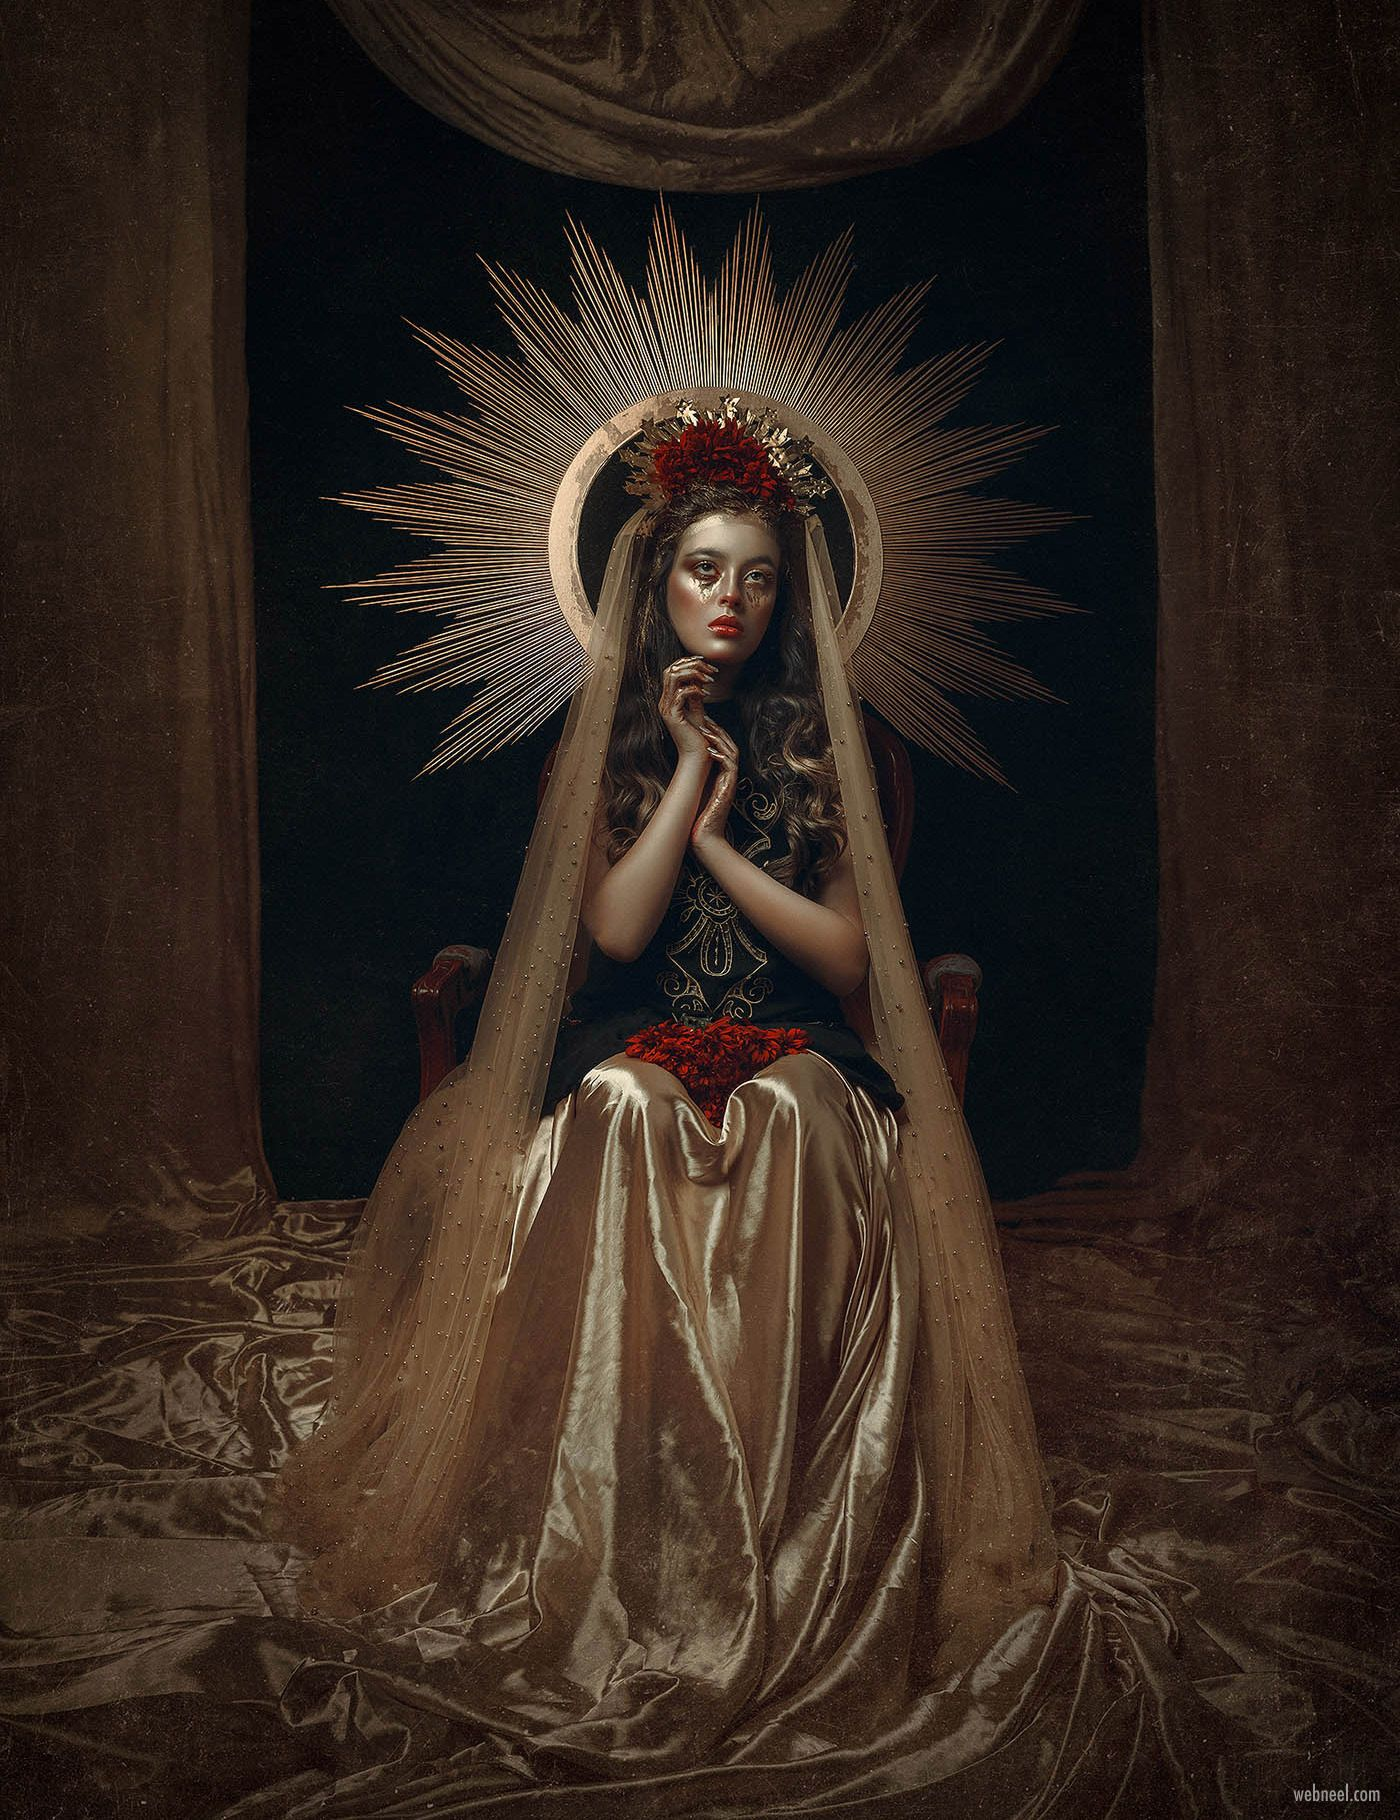 surreal photography photo retouching virgin mary by rebecca saray